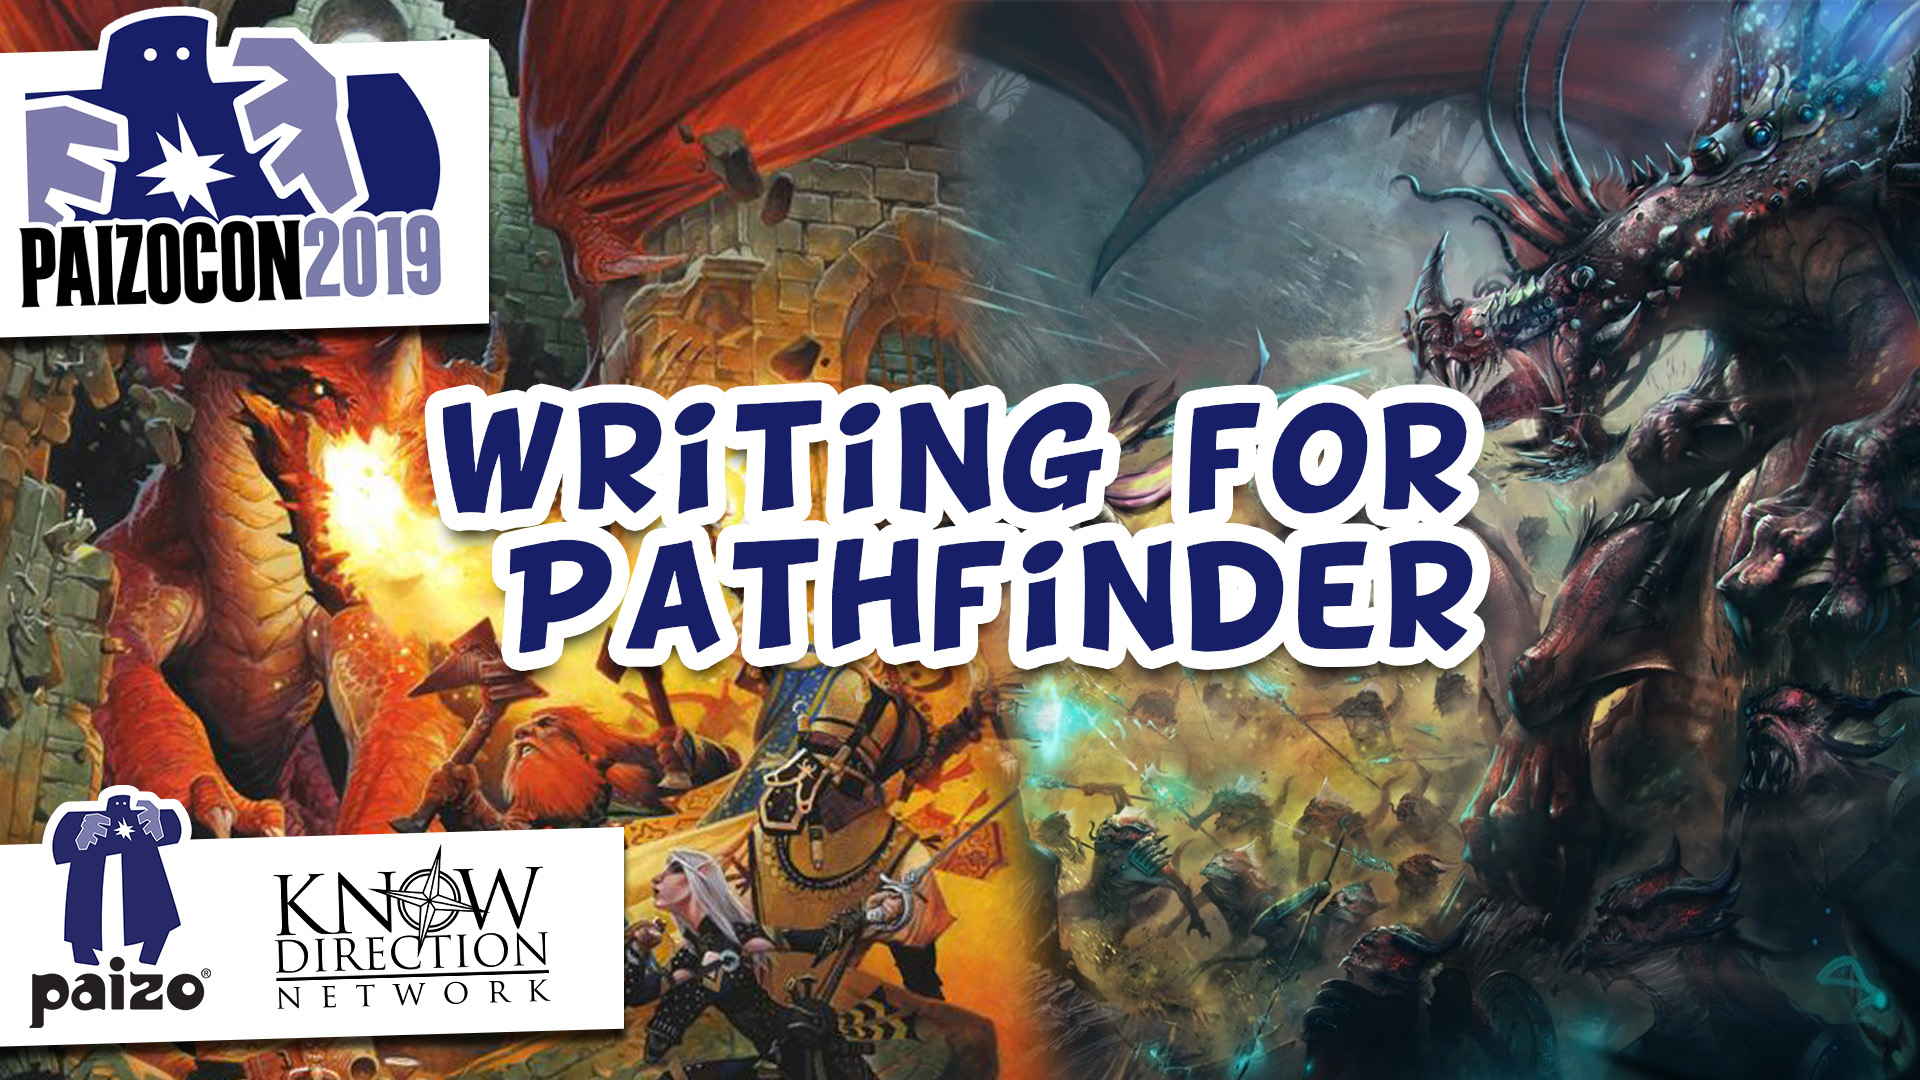 Writing for Pathfinder